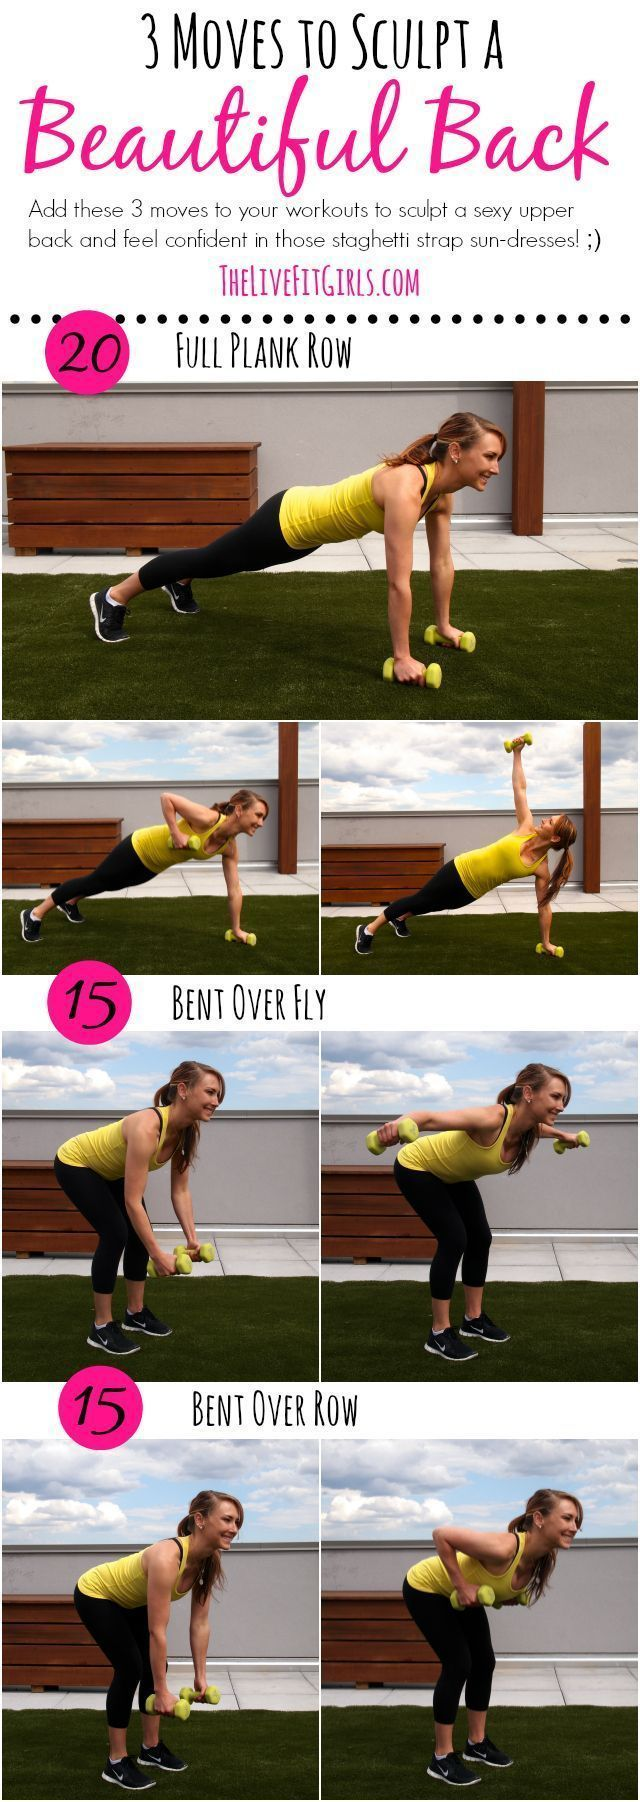 3 Moves to Sculpt a Beautiful Back - Dumbbell - Ideas of Dumbbell #Dumbbell -  Sculpt a Beautiful Ba...